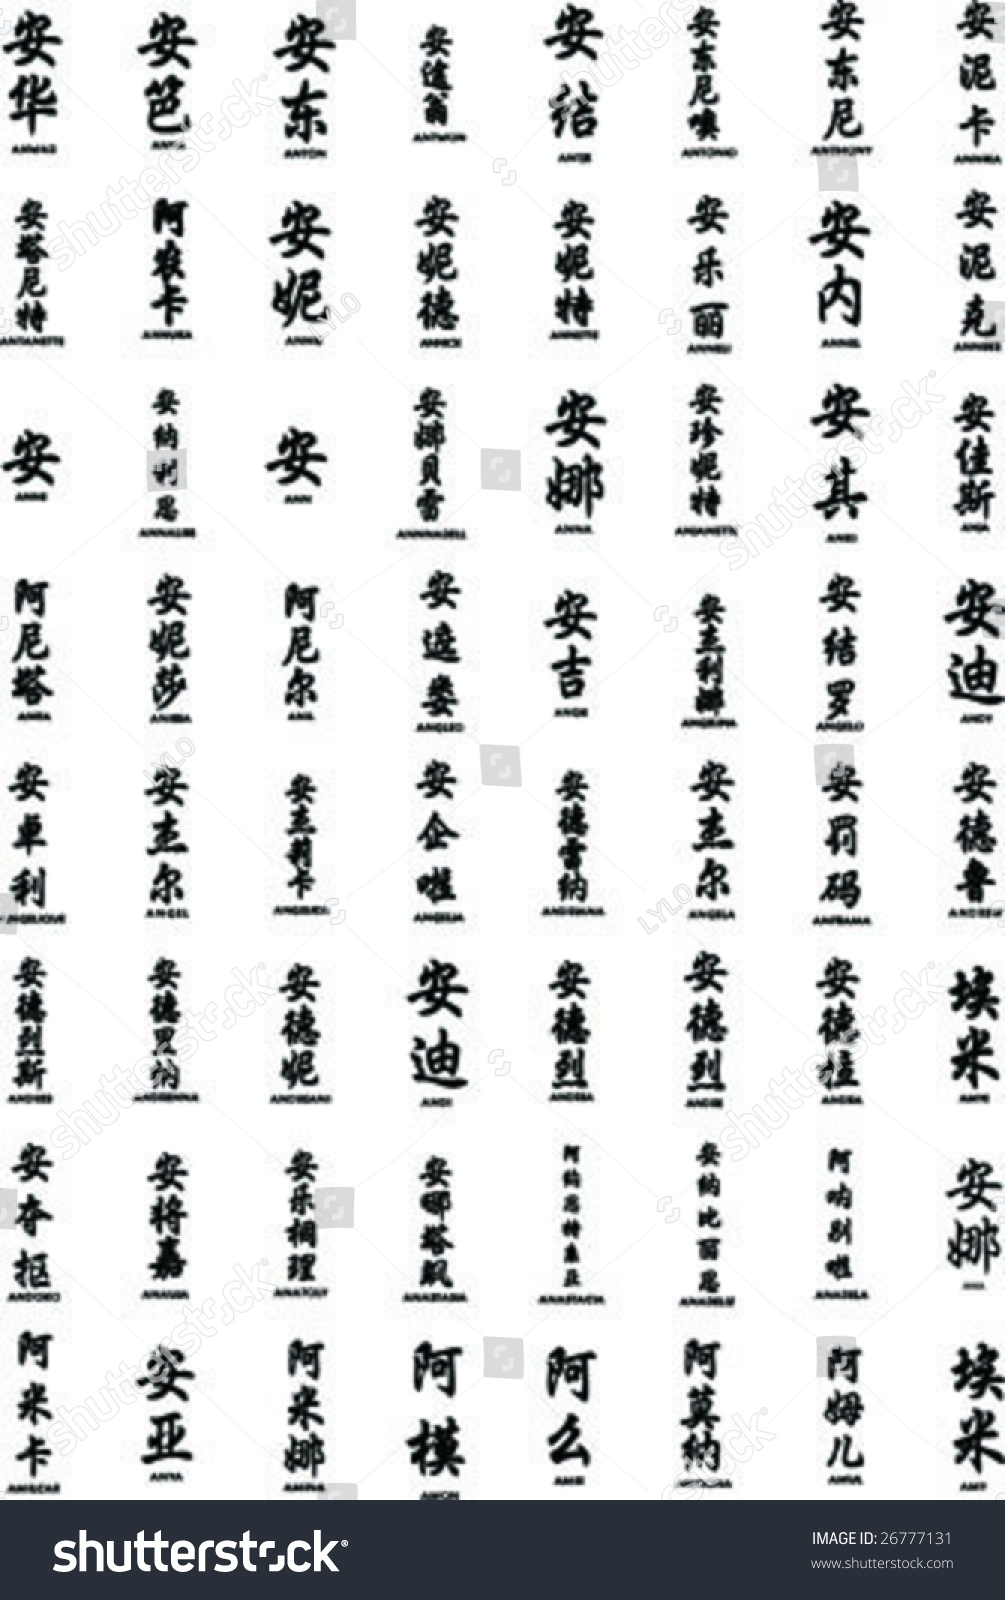 Names chinese letter stock vector 26777131 shutterstock names in chinese with the letter a biocorpaavc Choice Image